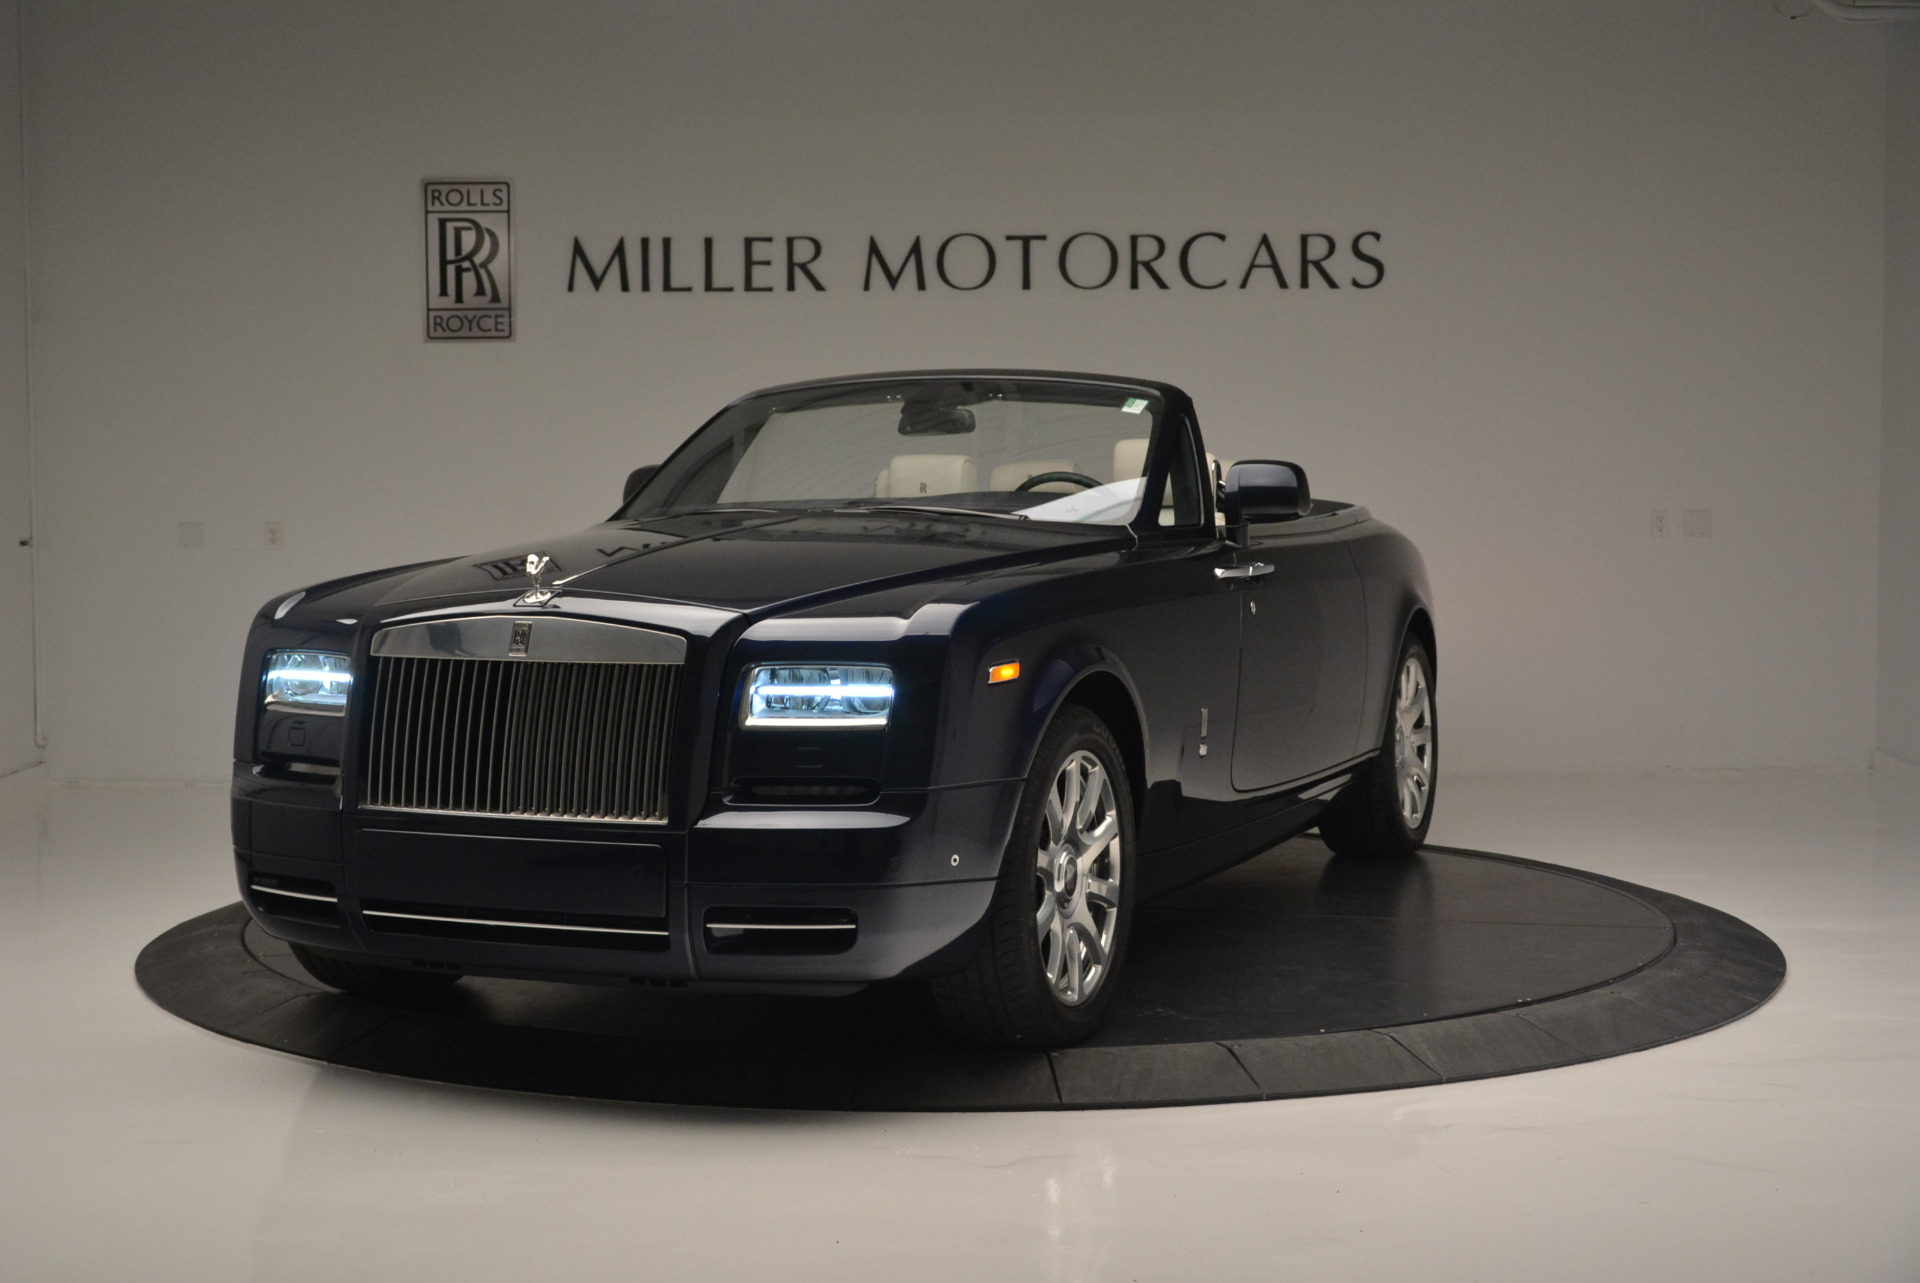 Used 2014 Rolls-Royce Phantom Drophead Coupe for sale Sold at Bentley Greenwich in Greenwich CT 06830 1